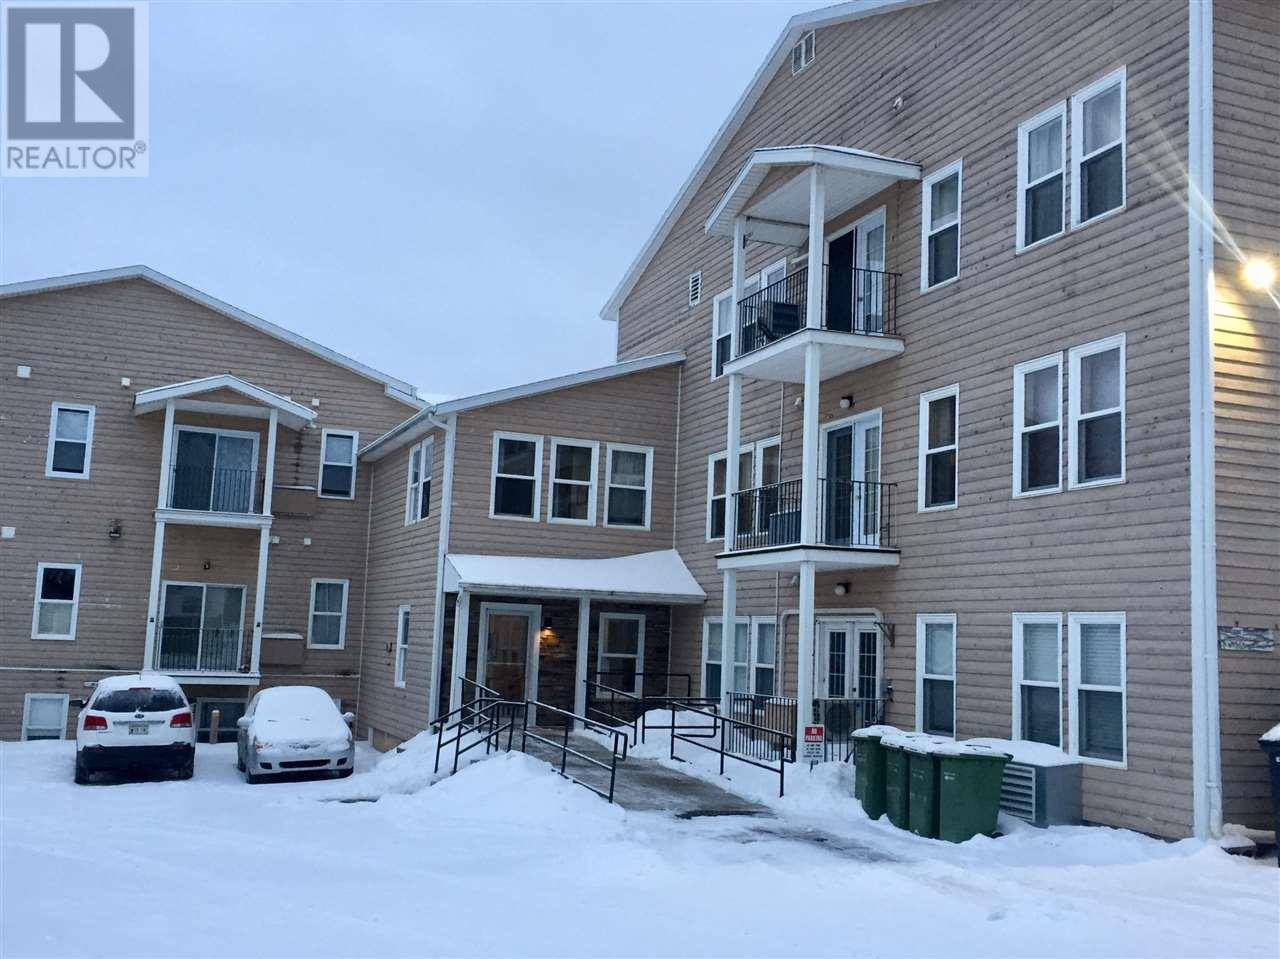 Condo for sale at 188 Prince St Unit 404 Charlottetown Prince Edward Island - MLS: 202000627